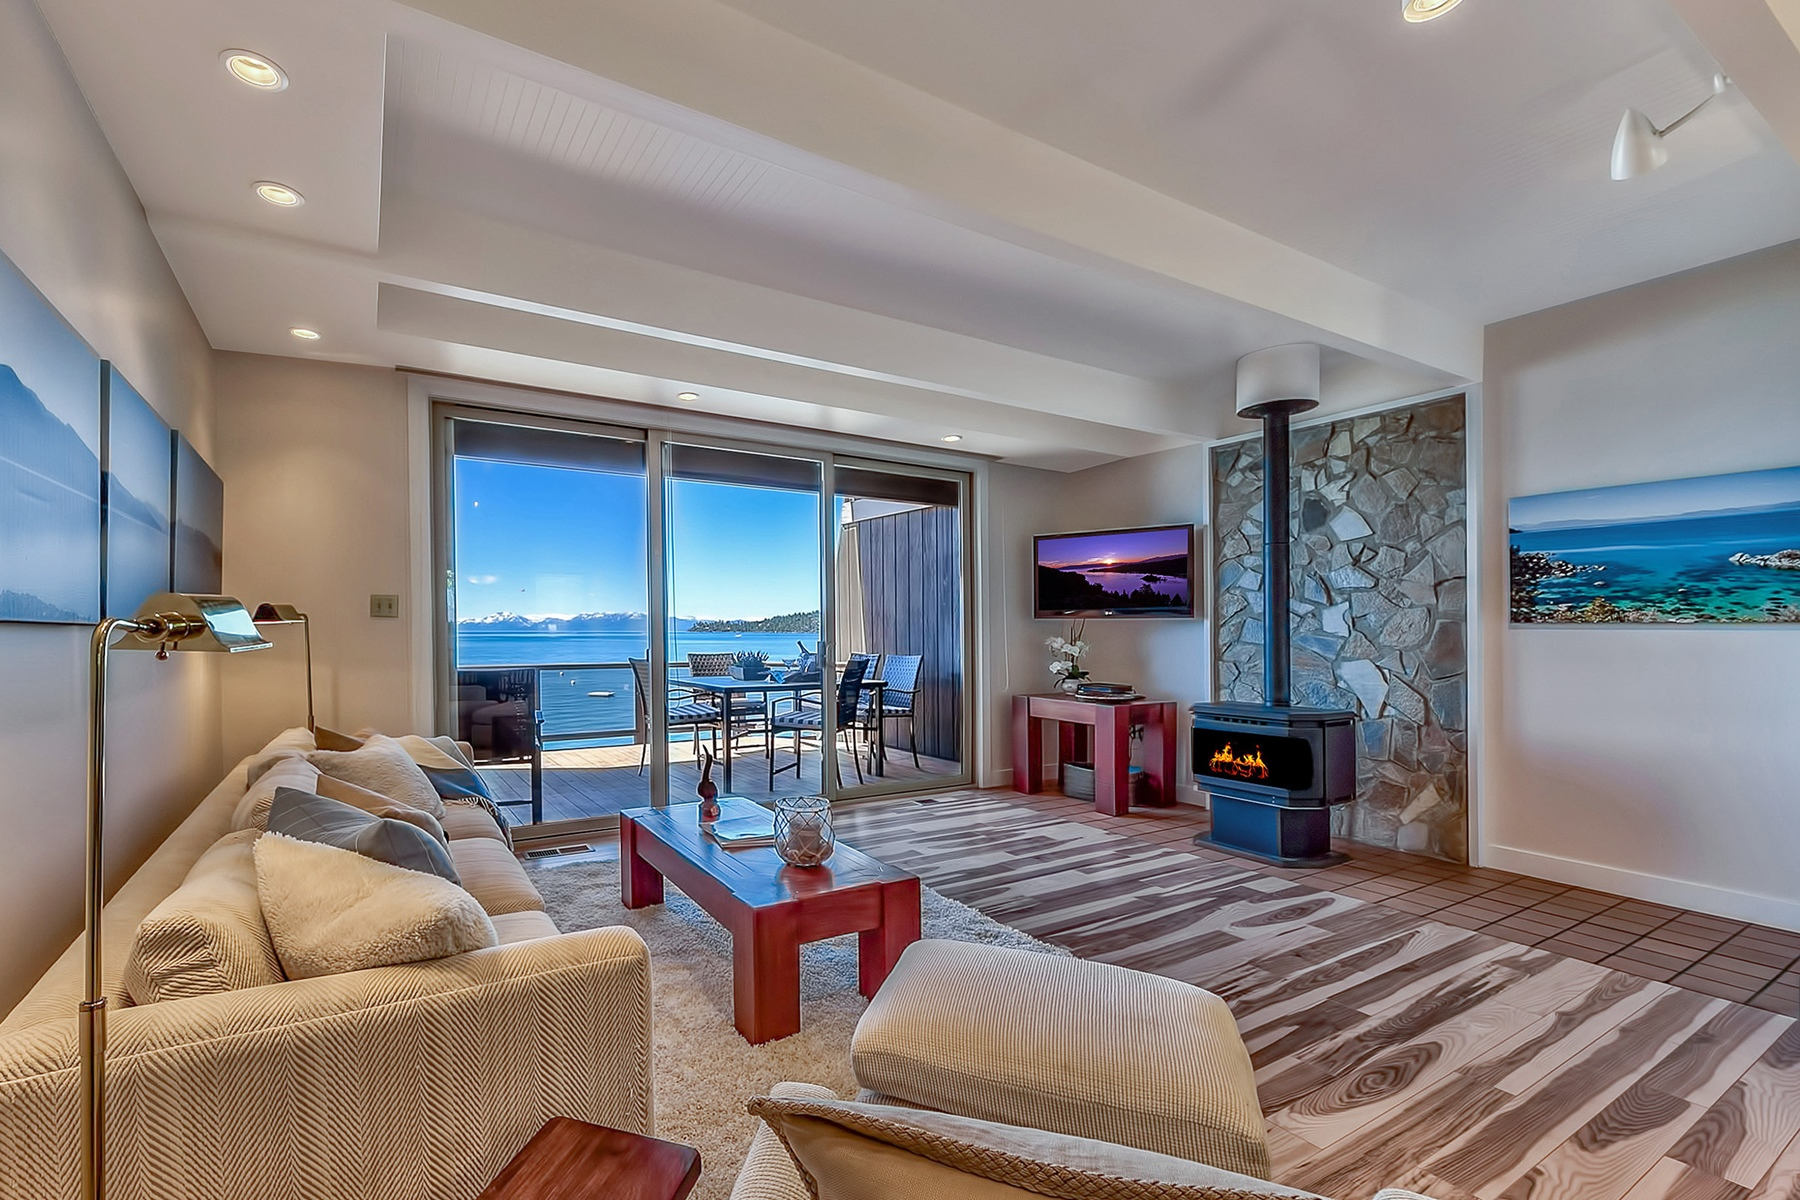 Кондоминиум для того Продажа на 549 Lakeshore Blvd. #21, Incline Village, Nevada Incline Village, Невада, 89451 Lake Tahoe, Соединенные Штаты